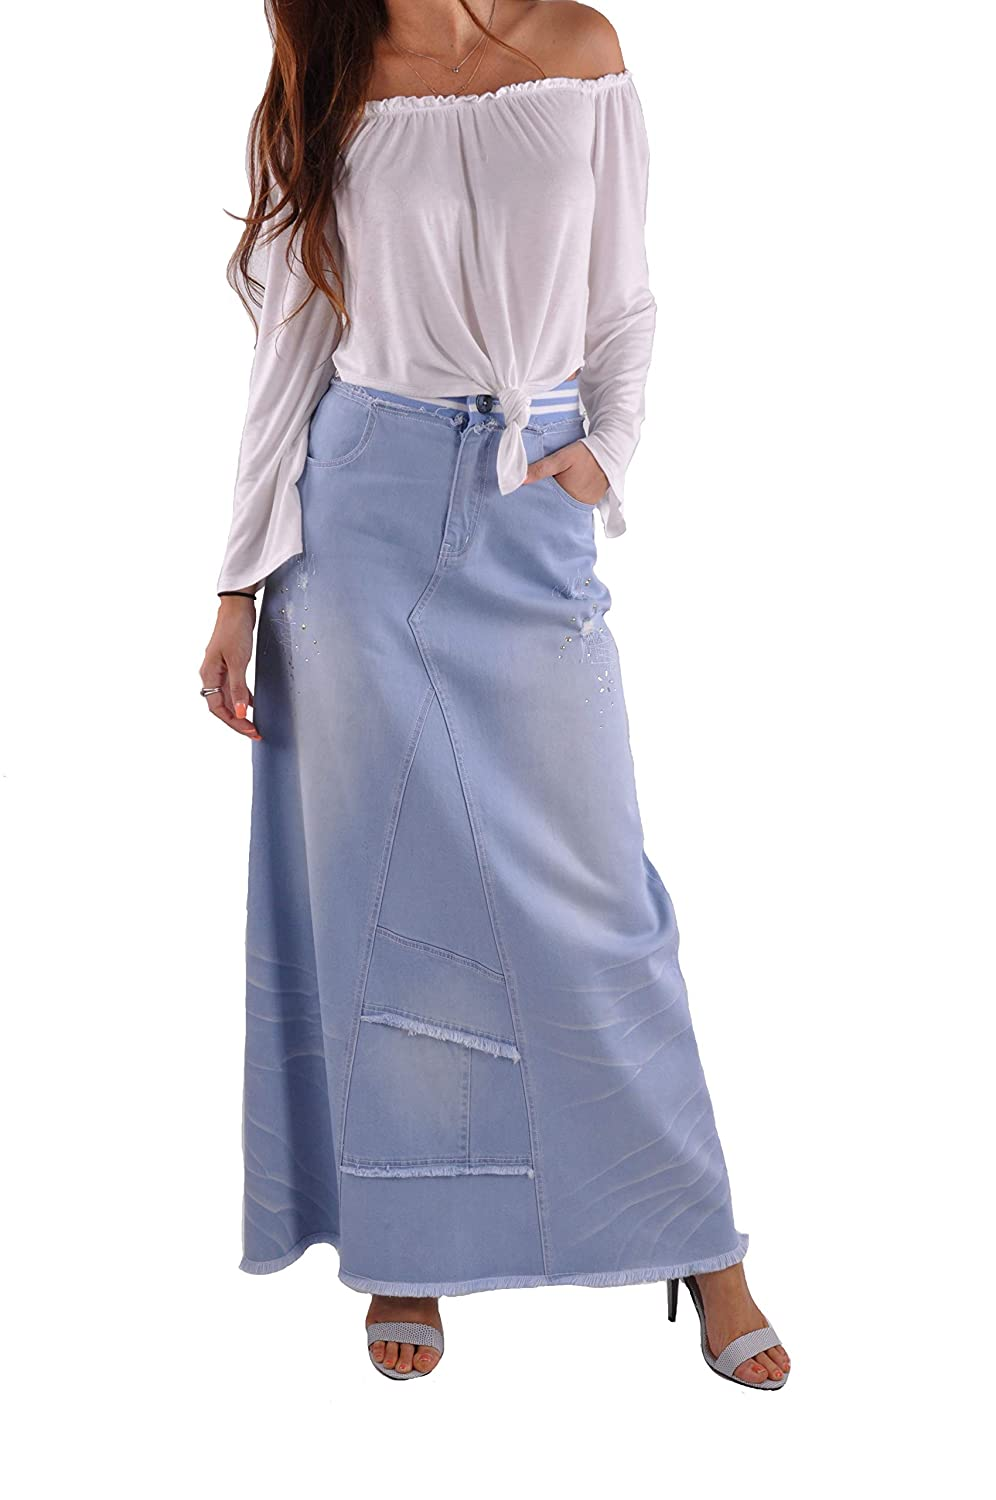 Style J Trendy bluee Long Jean Skirt